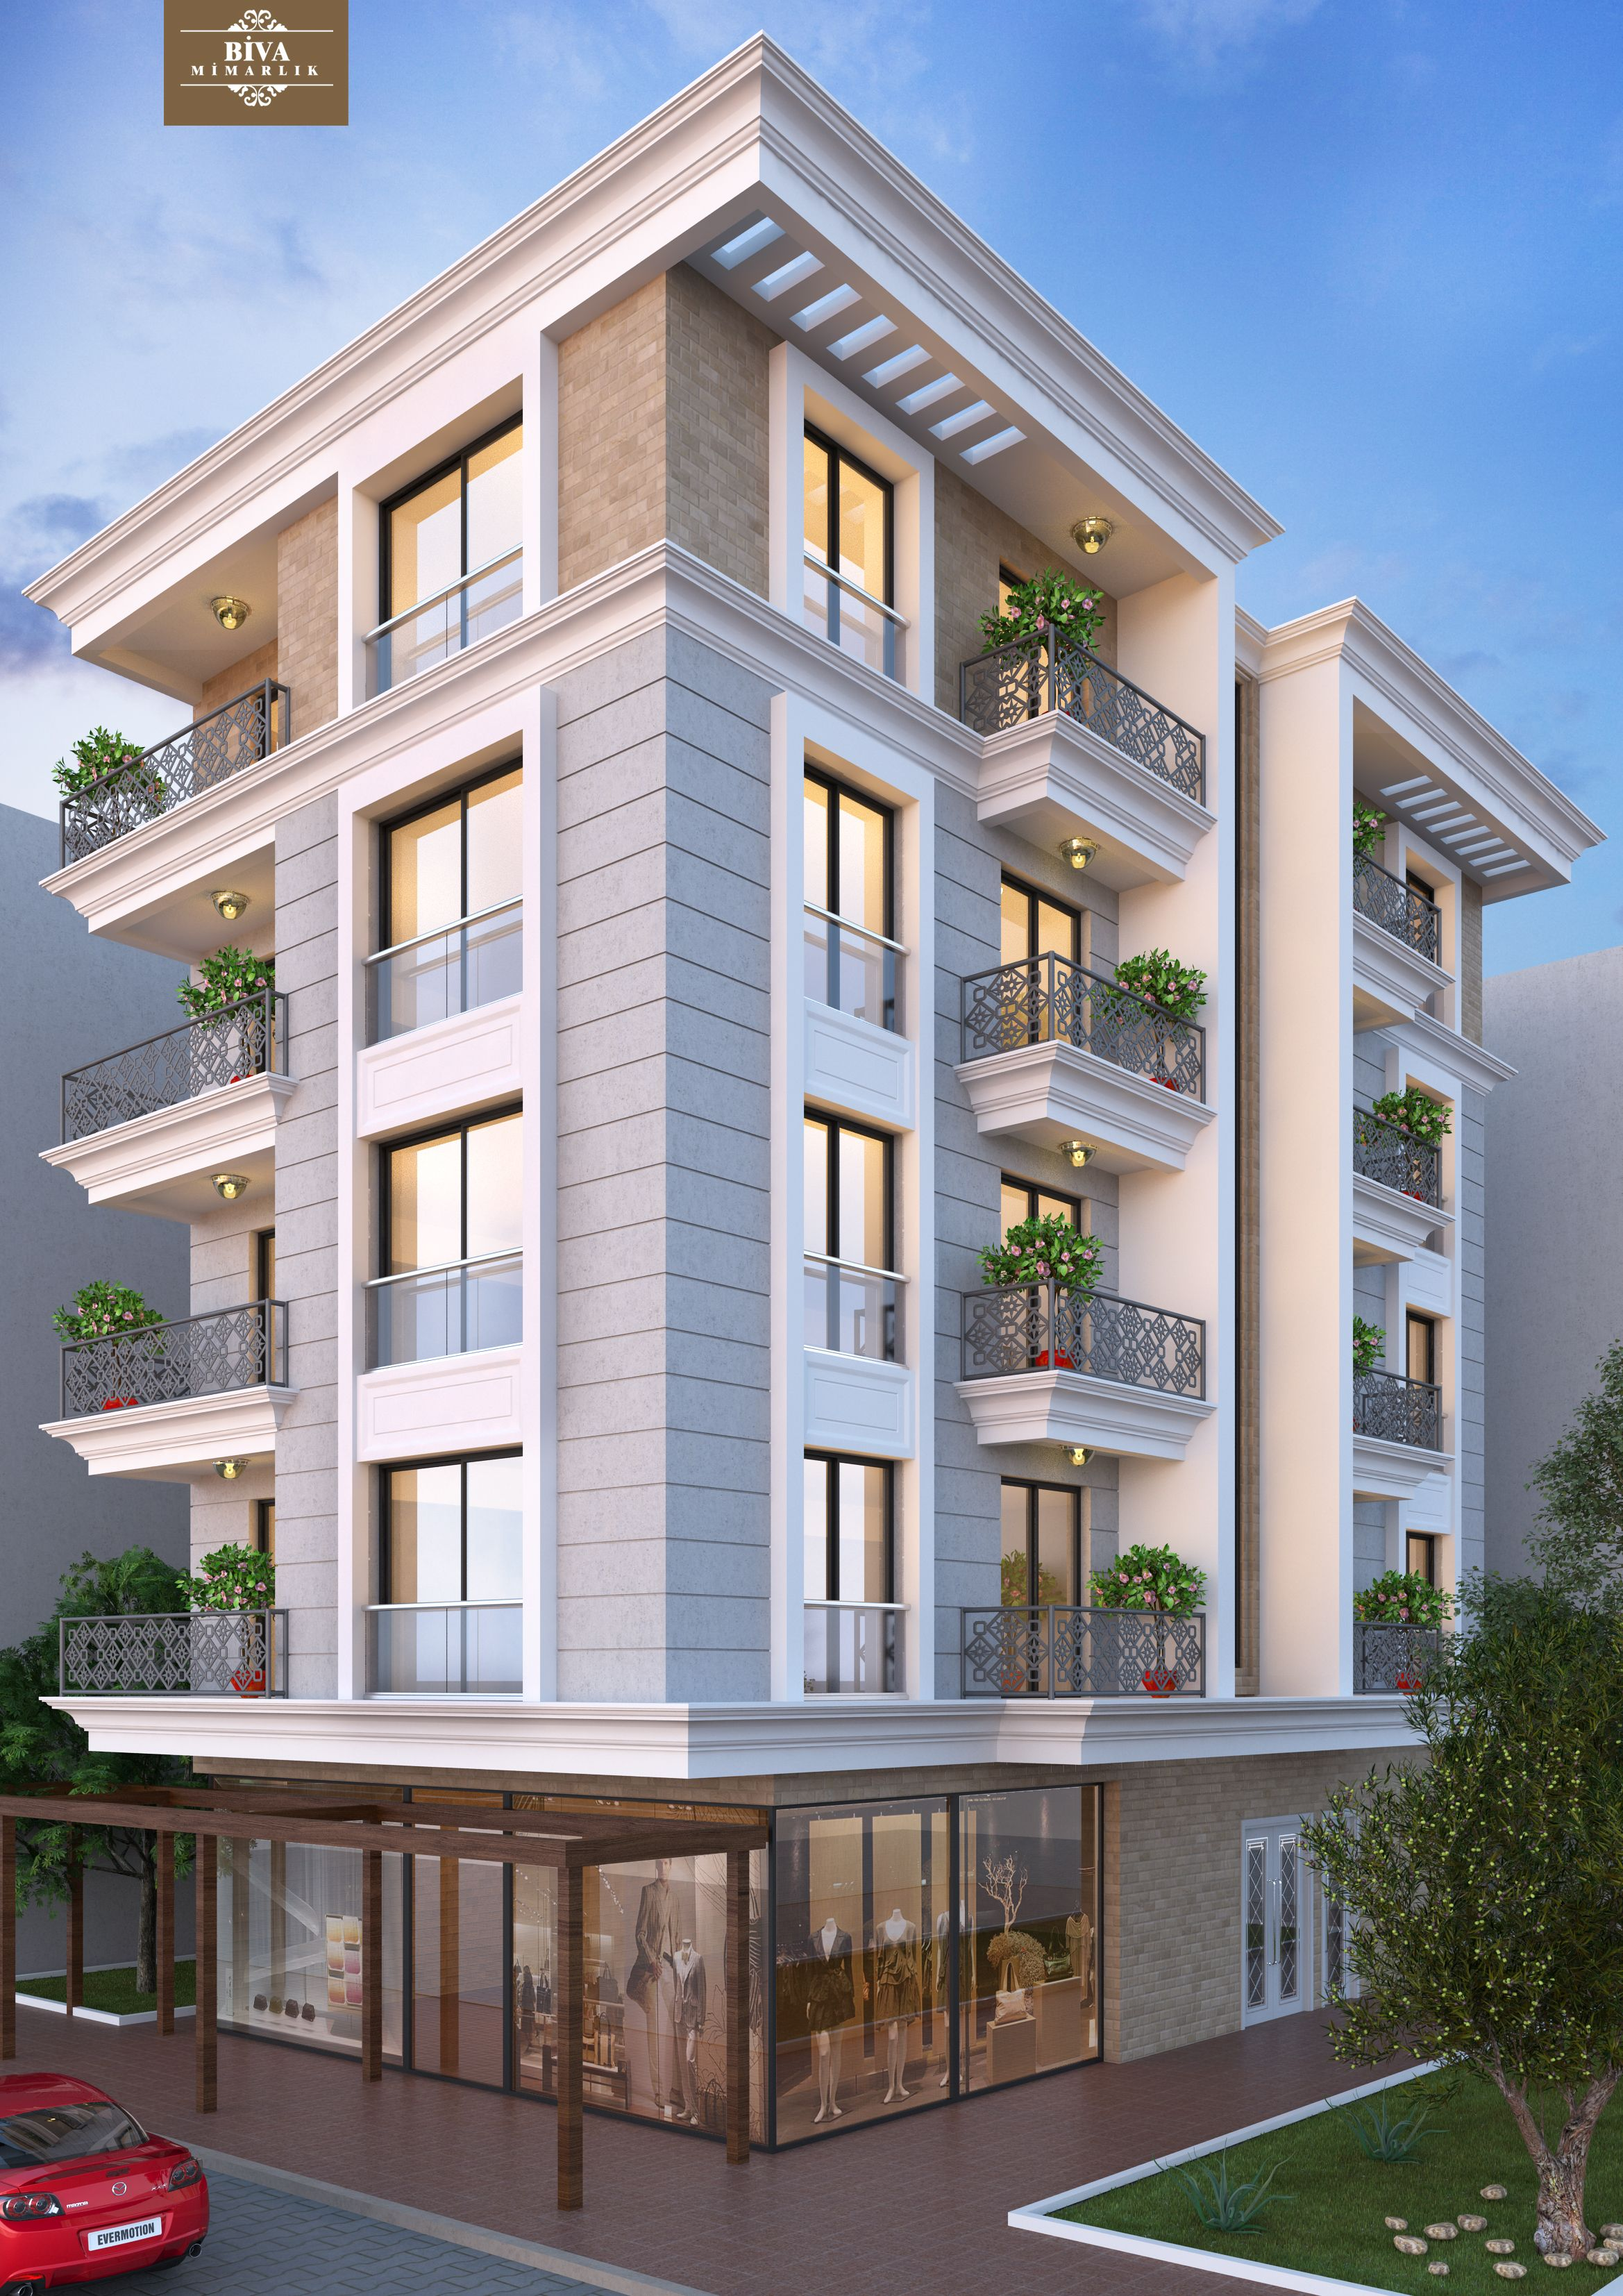 Architectural Design Of Residential Building Cephe Tasarimi Facades Architecture Building Facade Building